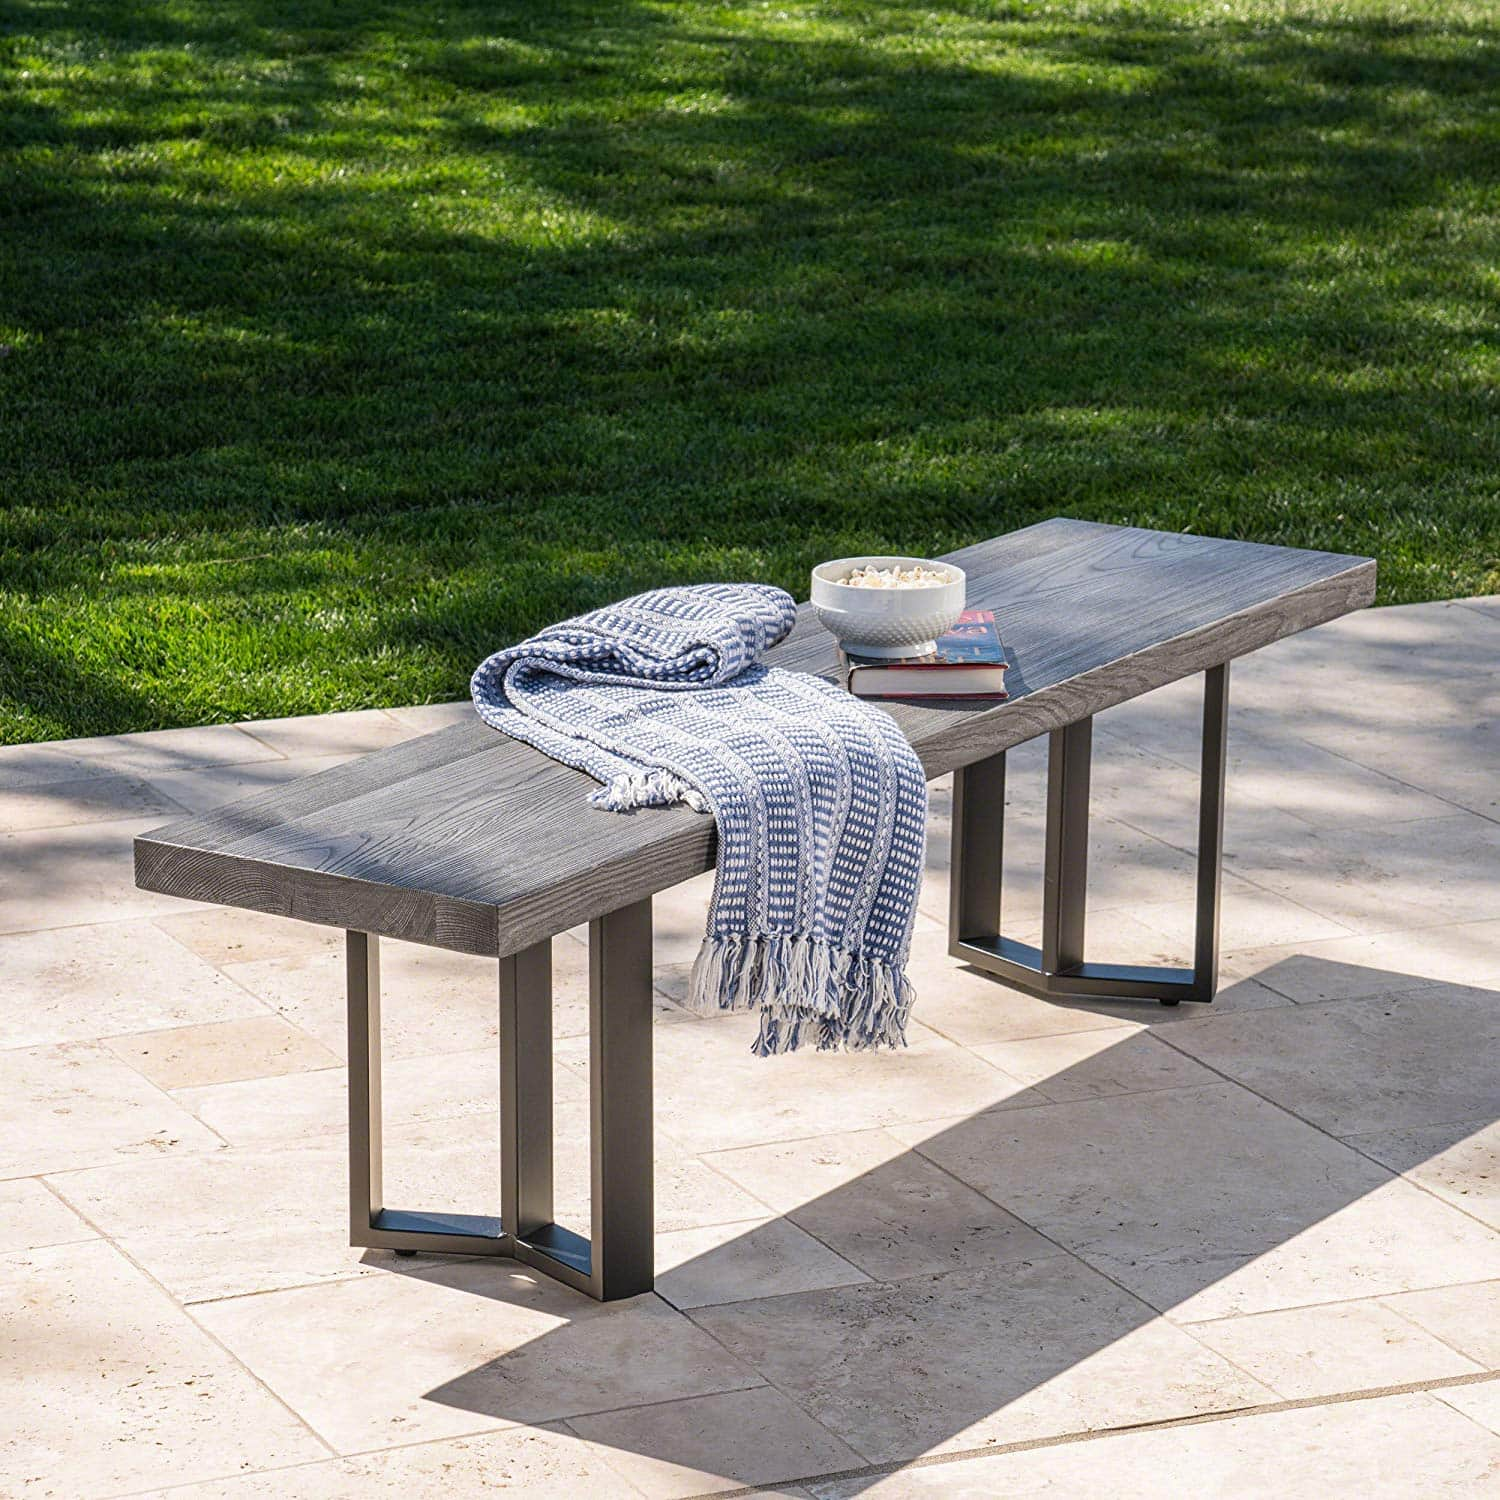 Another Beautiful Concrete And Metal Bench By Great Deal Furniture, The  Andre Textured Light Weight Concrete Bench Is A ...